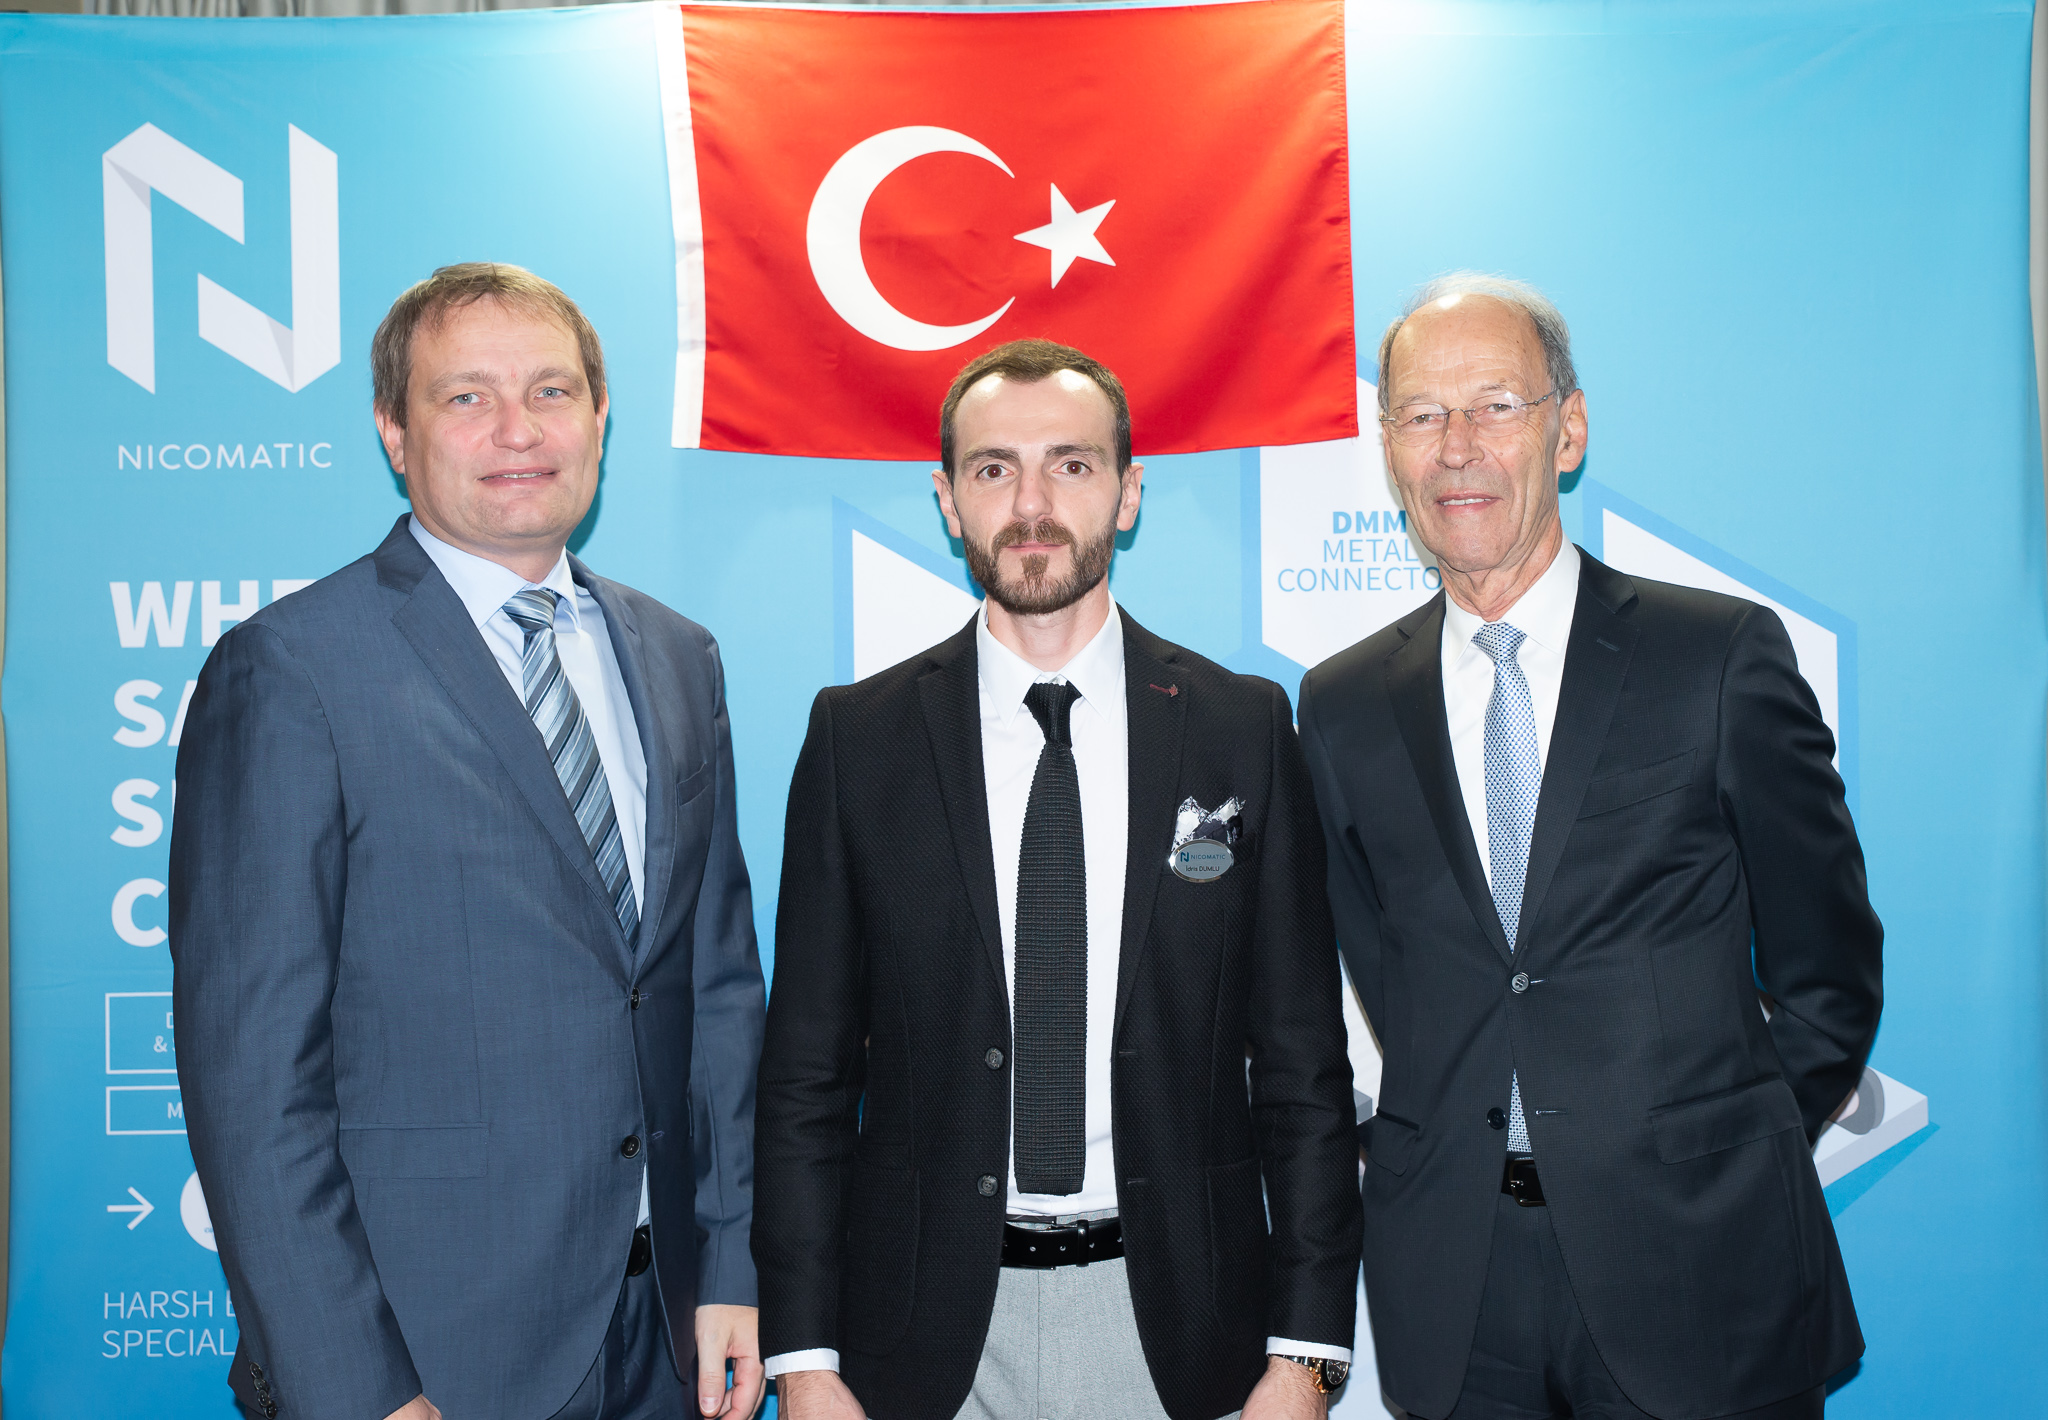 Nicomatic Turkey will Manufacture 1mm Pitch Connector in Turkey